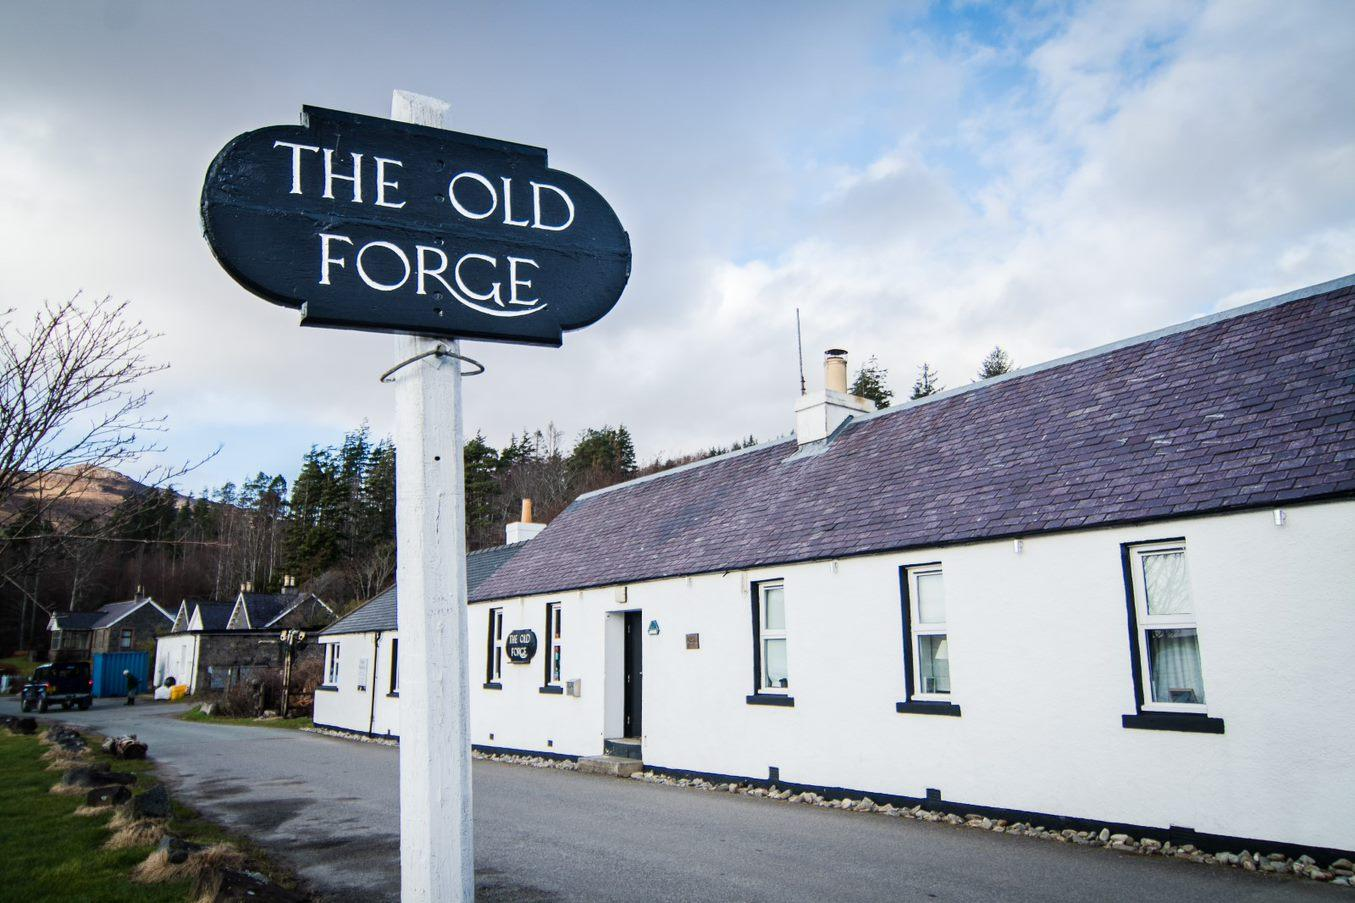 The Old Forge pub, Knoydart